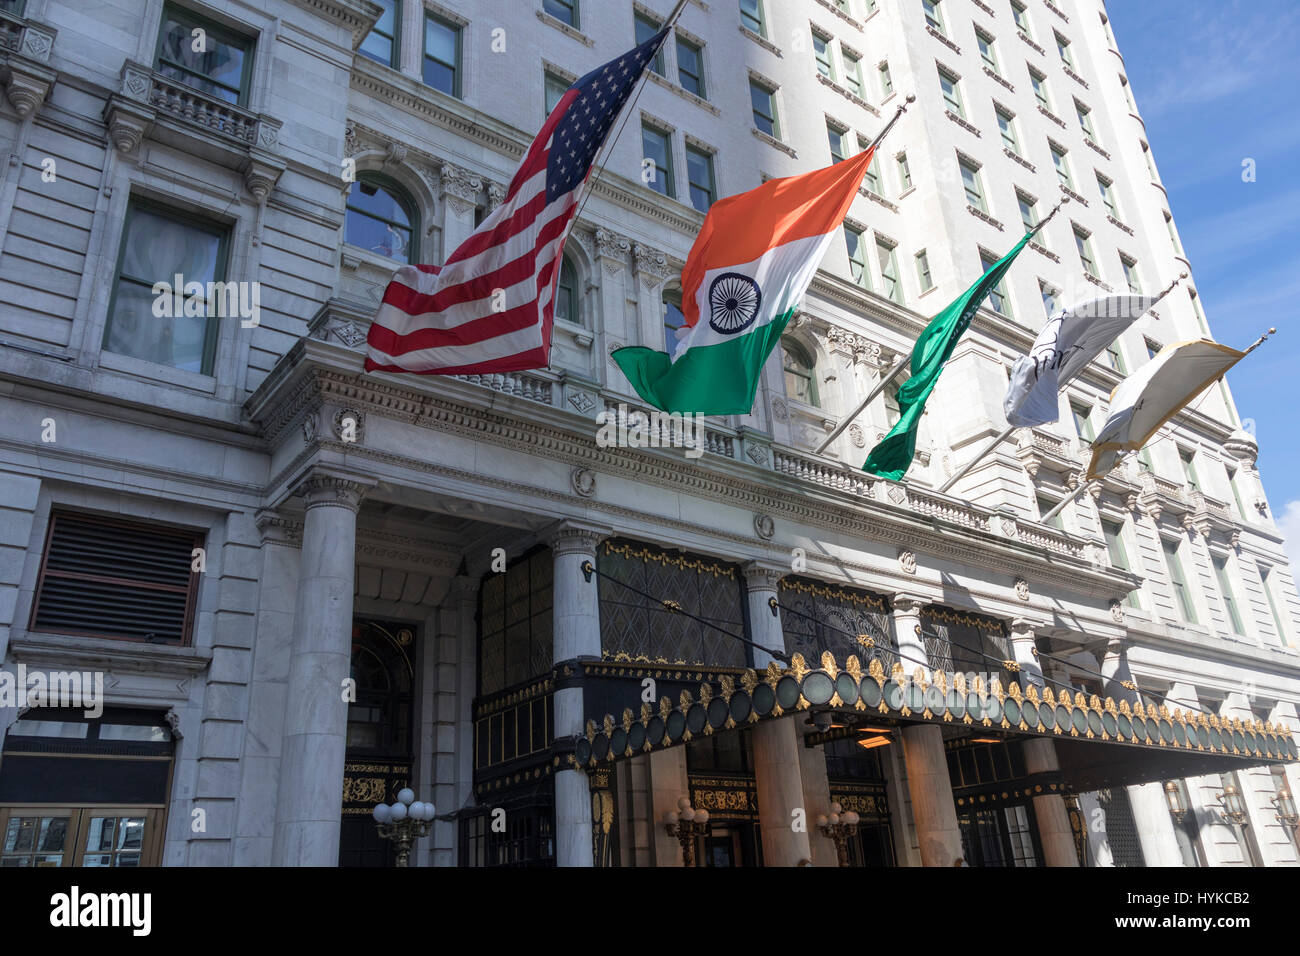 Entrance, The Plaza Hotel,  Midtown Manhattan, New York City - Stock Image